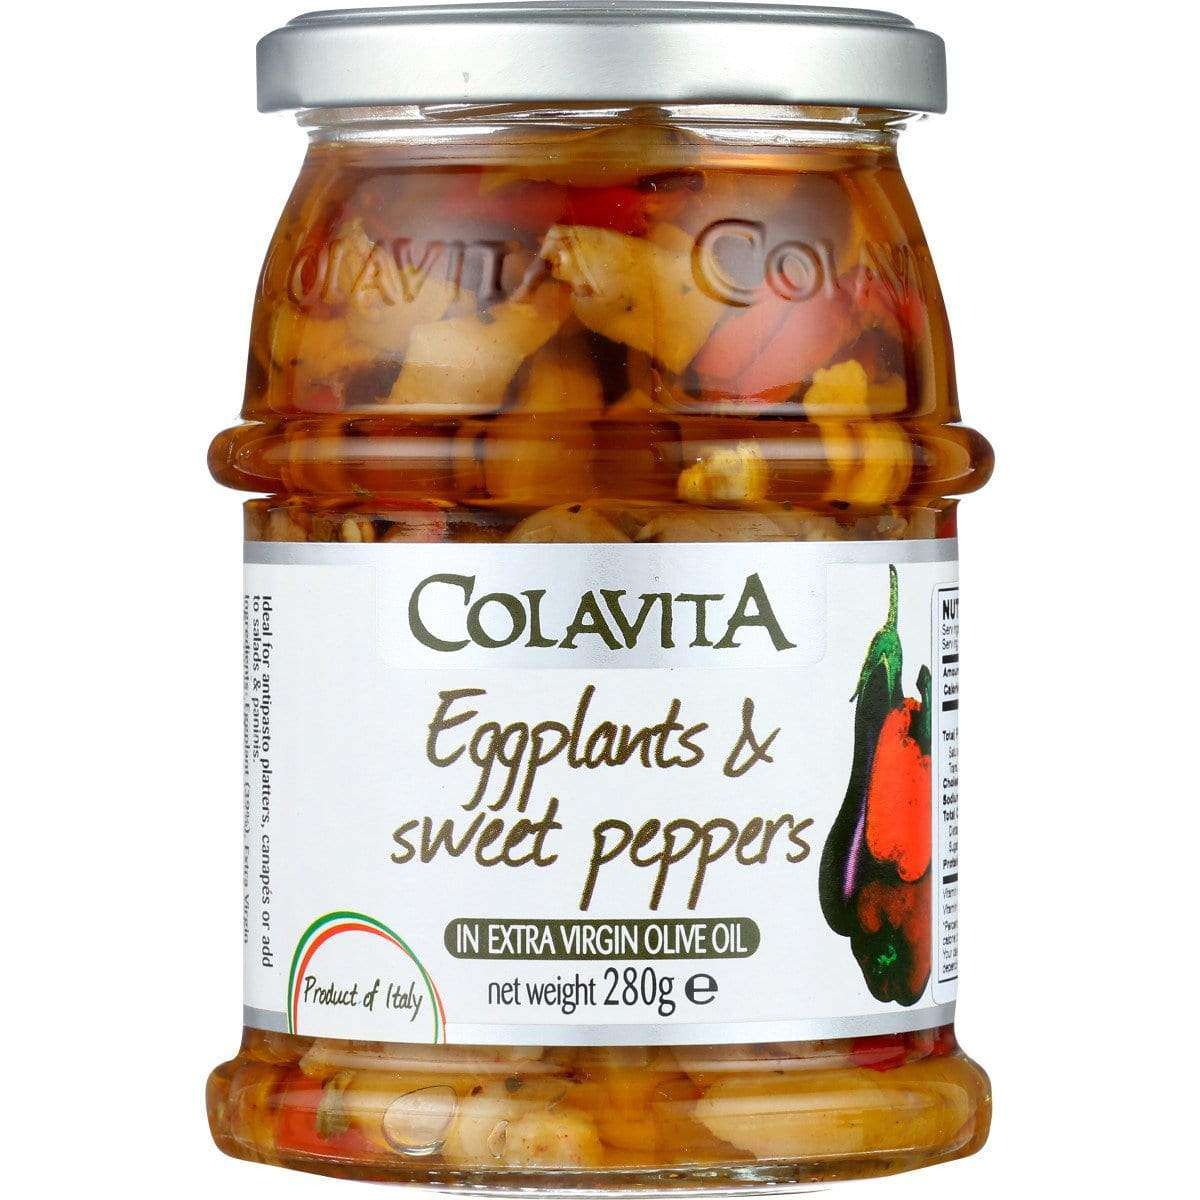 Colavita Eggplant & Sweet Peppers In Extra Virgin Olive Oil, 9.87 Ounce